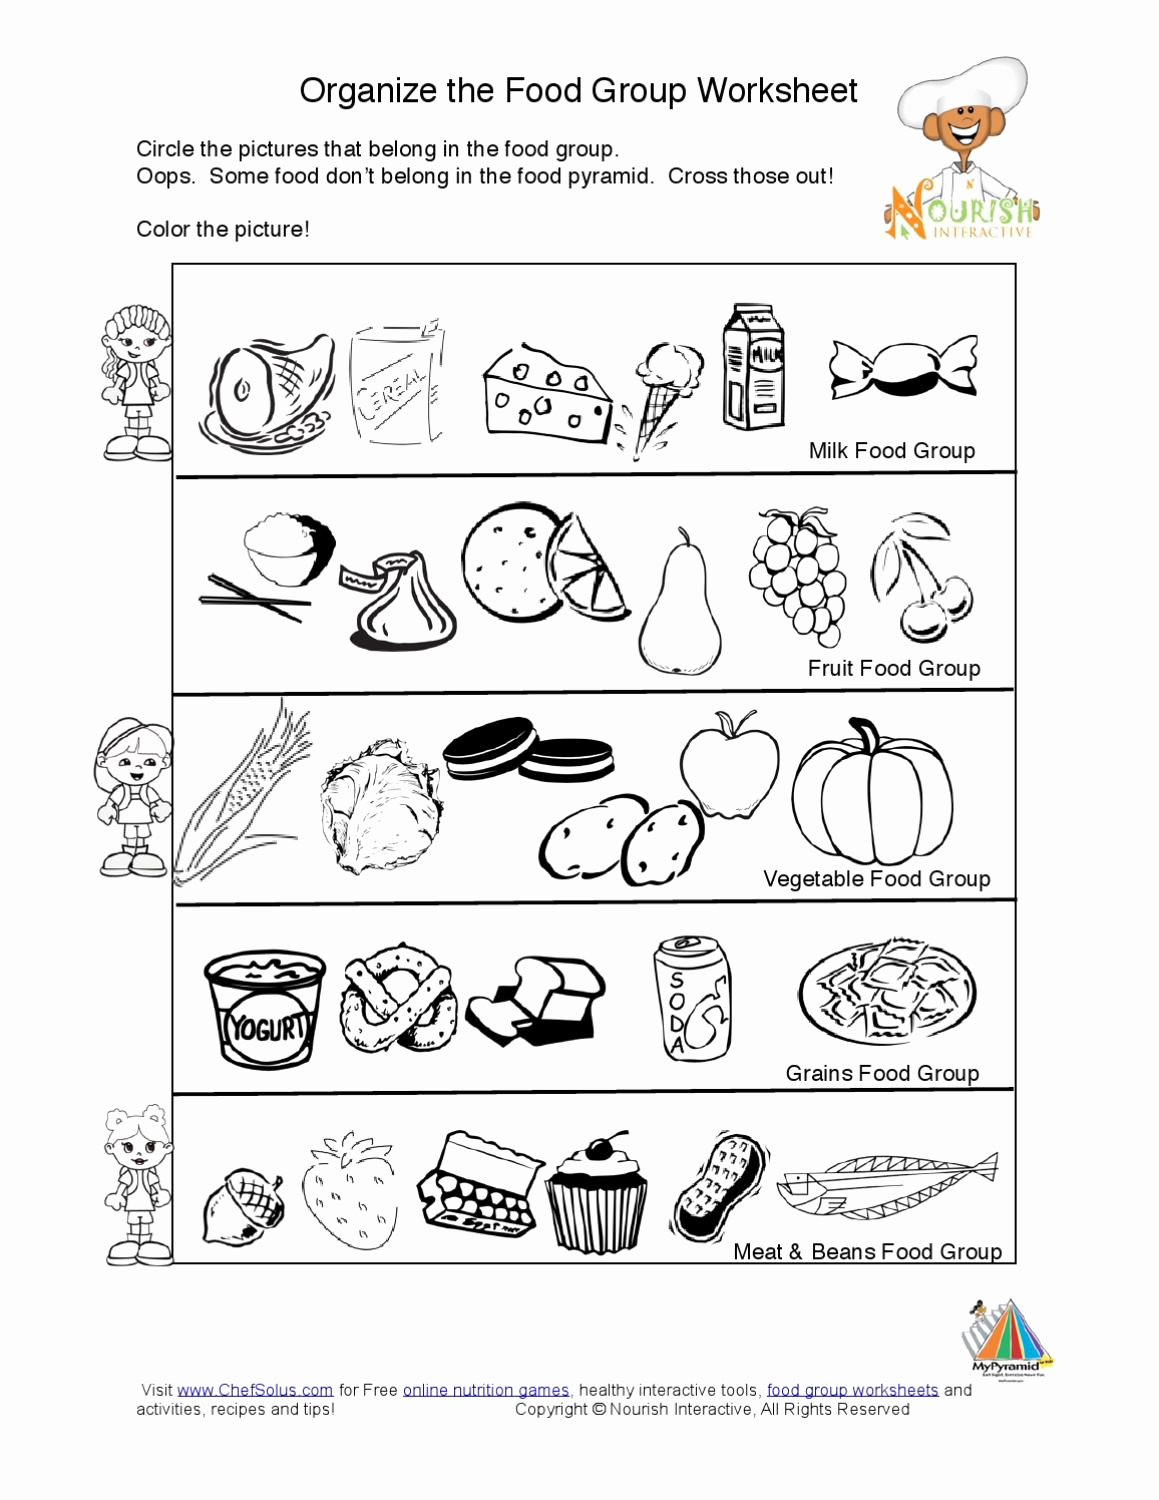 Five Food Groups Worksheets Awesome Kids Food Pyramid Food Groups Learning Nutrition Worksheet